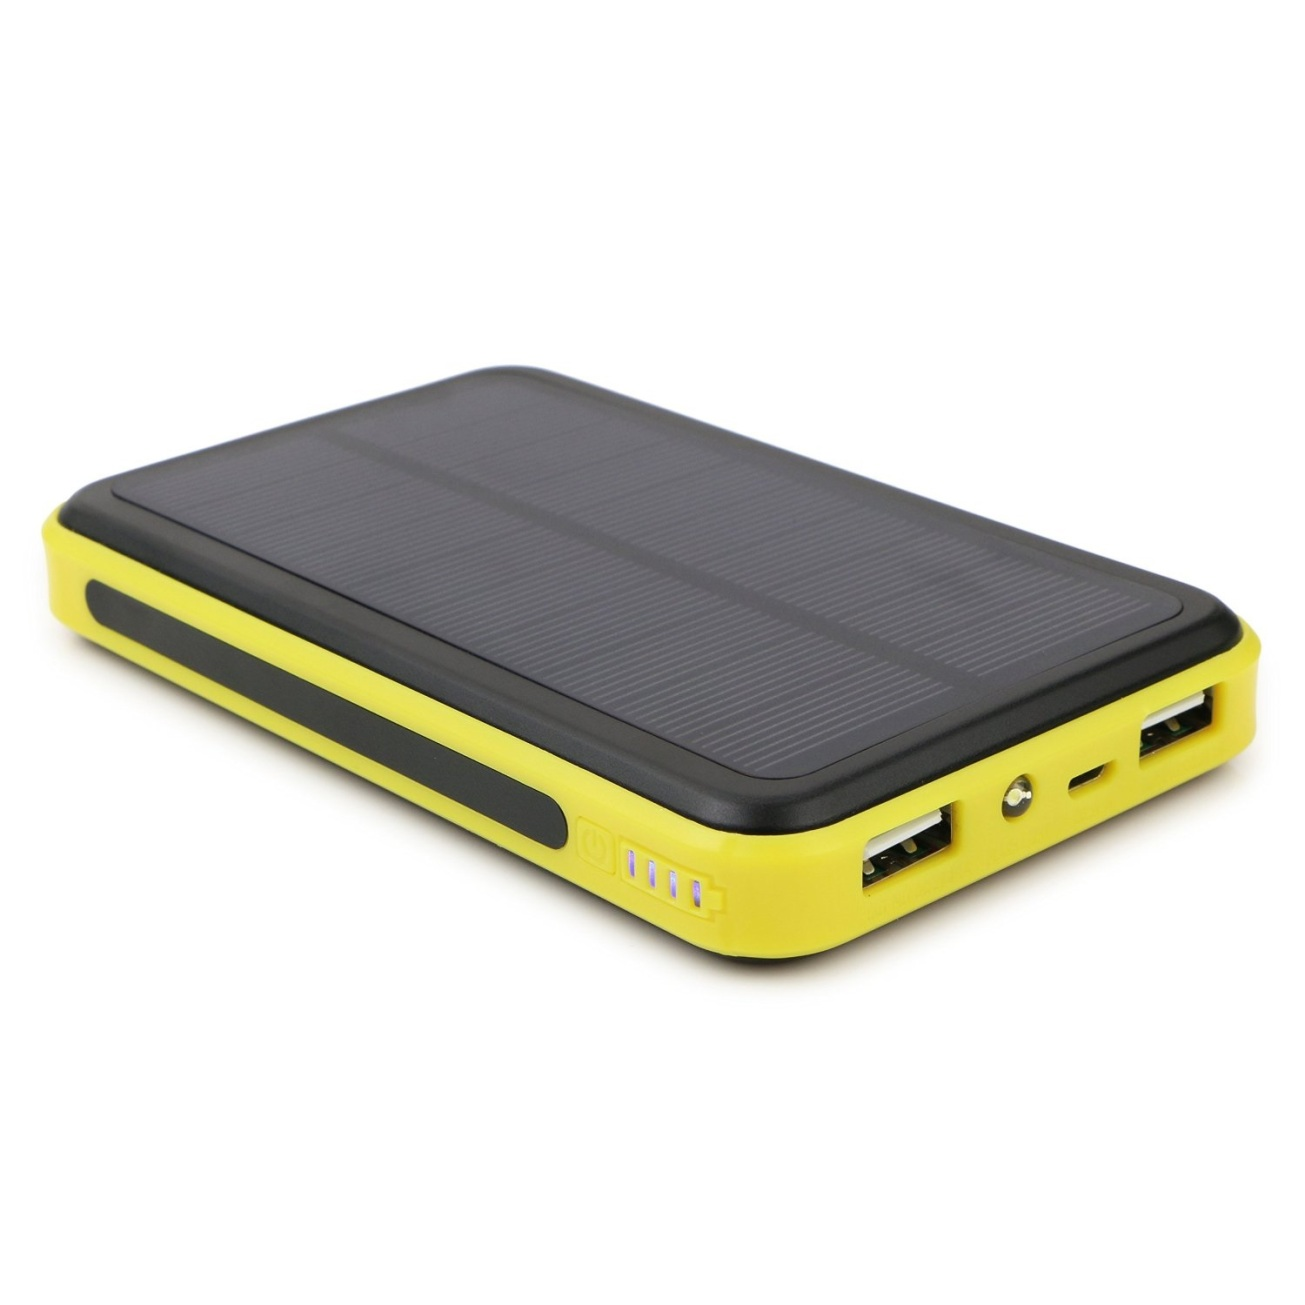 ALLPOWERS 10000mAh Solar Panel Charger, Amazon $28.99